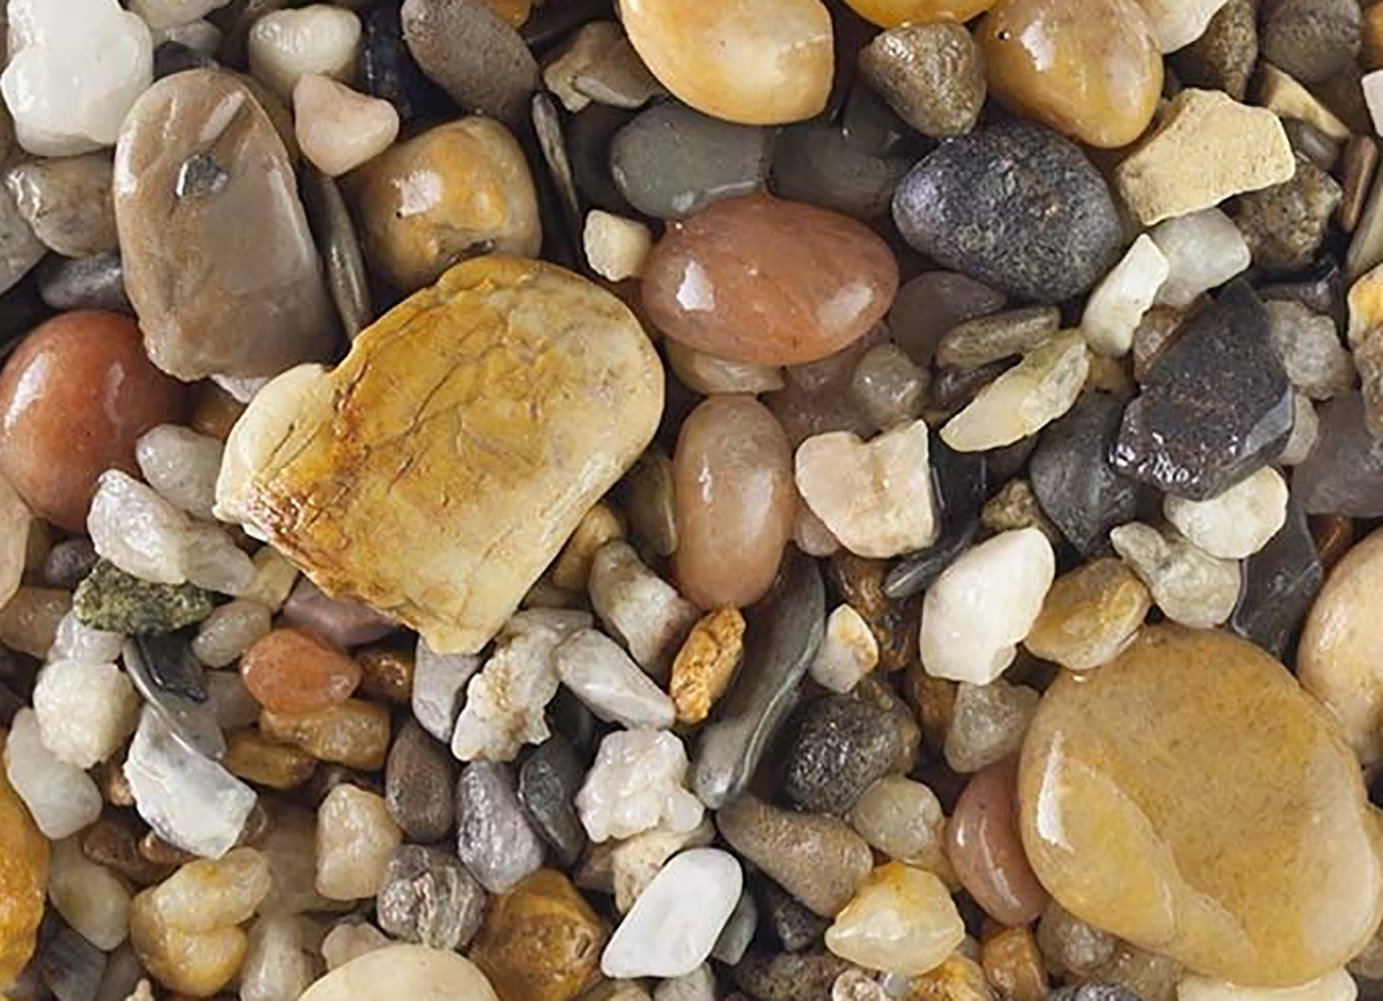 Safe & Non-Toxic {Various Sizes} 20 Pound Bag of Gravel, Rocks & Pebbles Decor for Freshwater Aquarium w/ Natural Rustic River Inspired Polished Earthy Toned Sleek Style [Gray, Tan & Brown] by mySimple Products